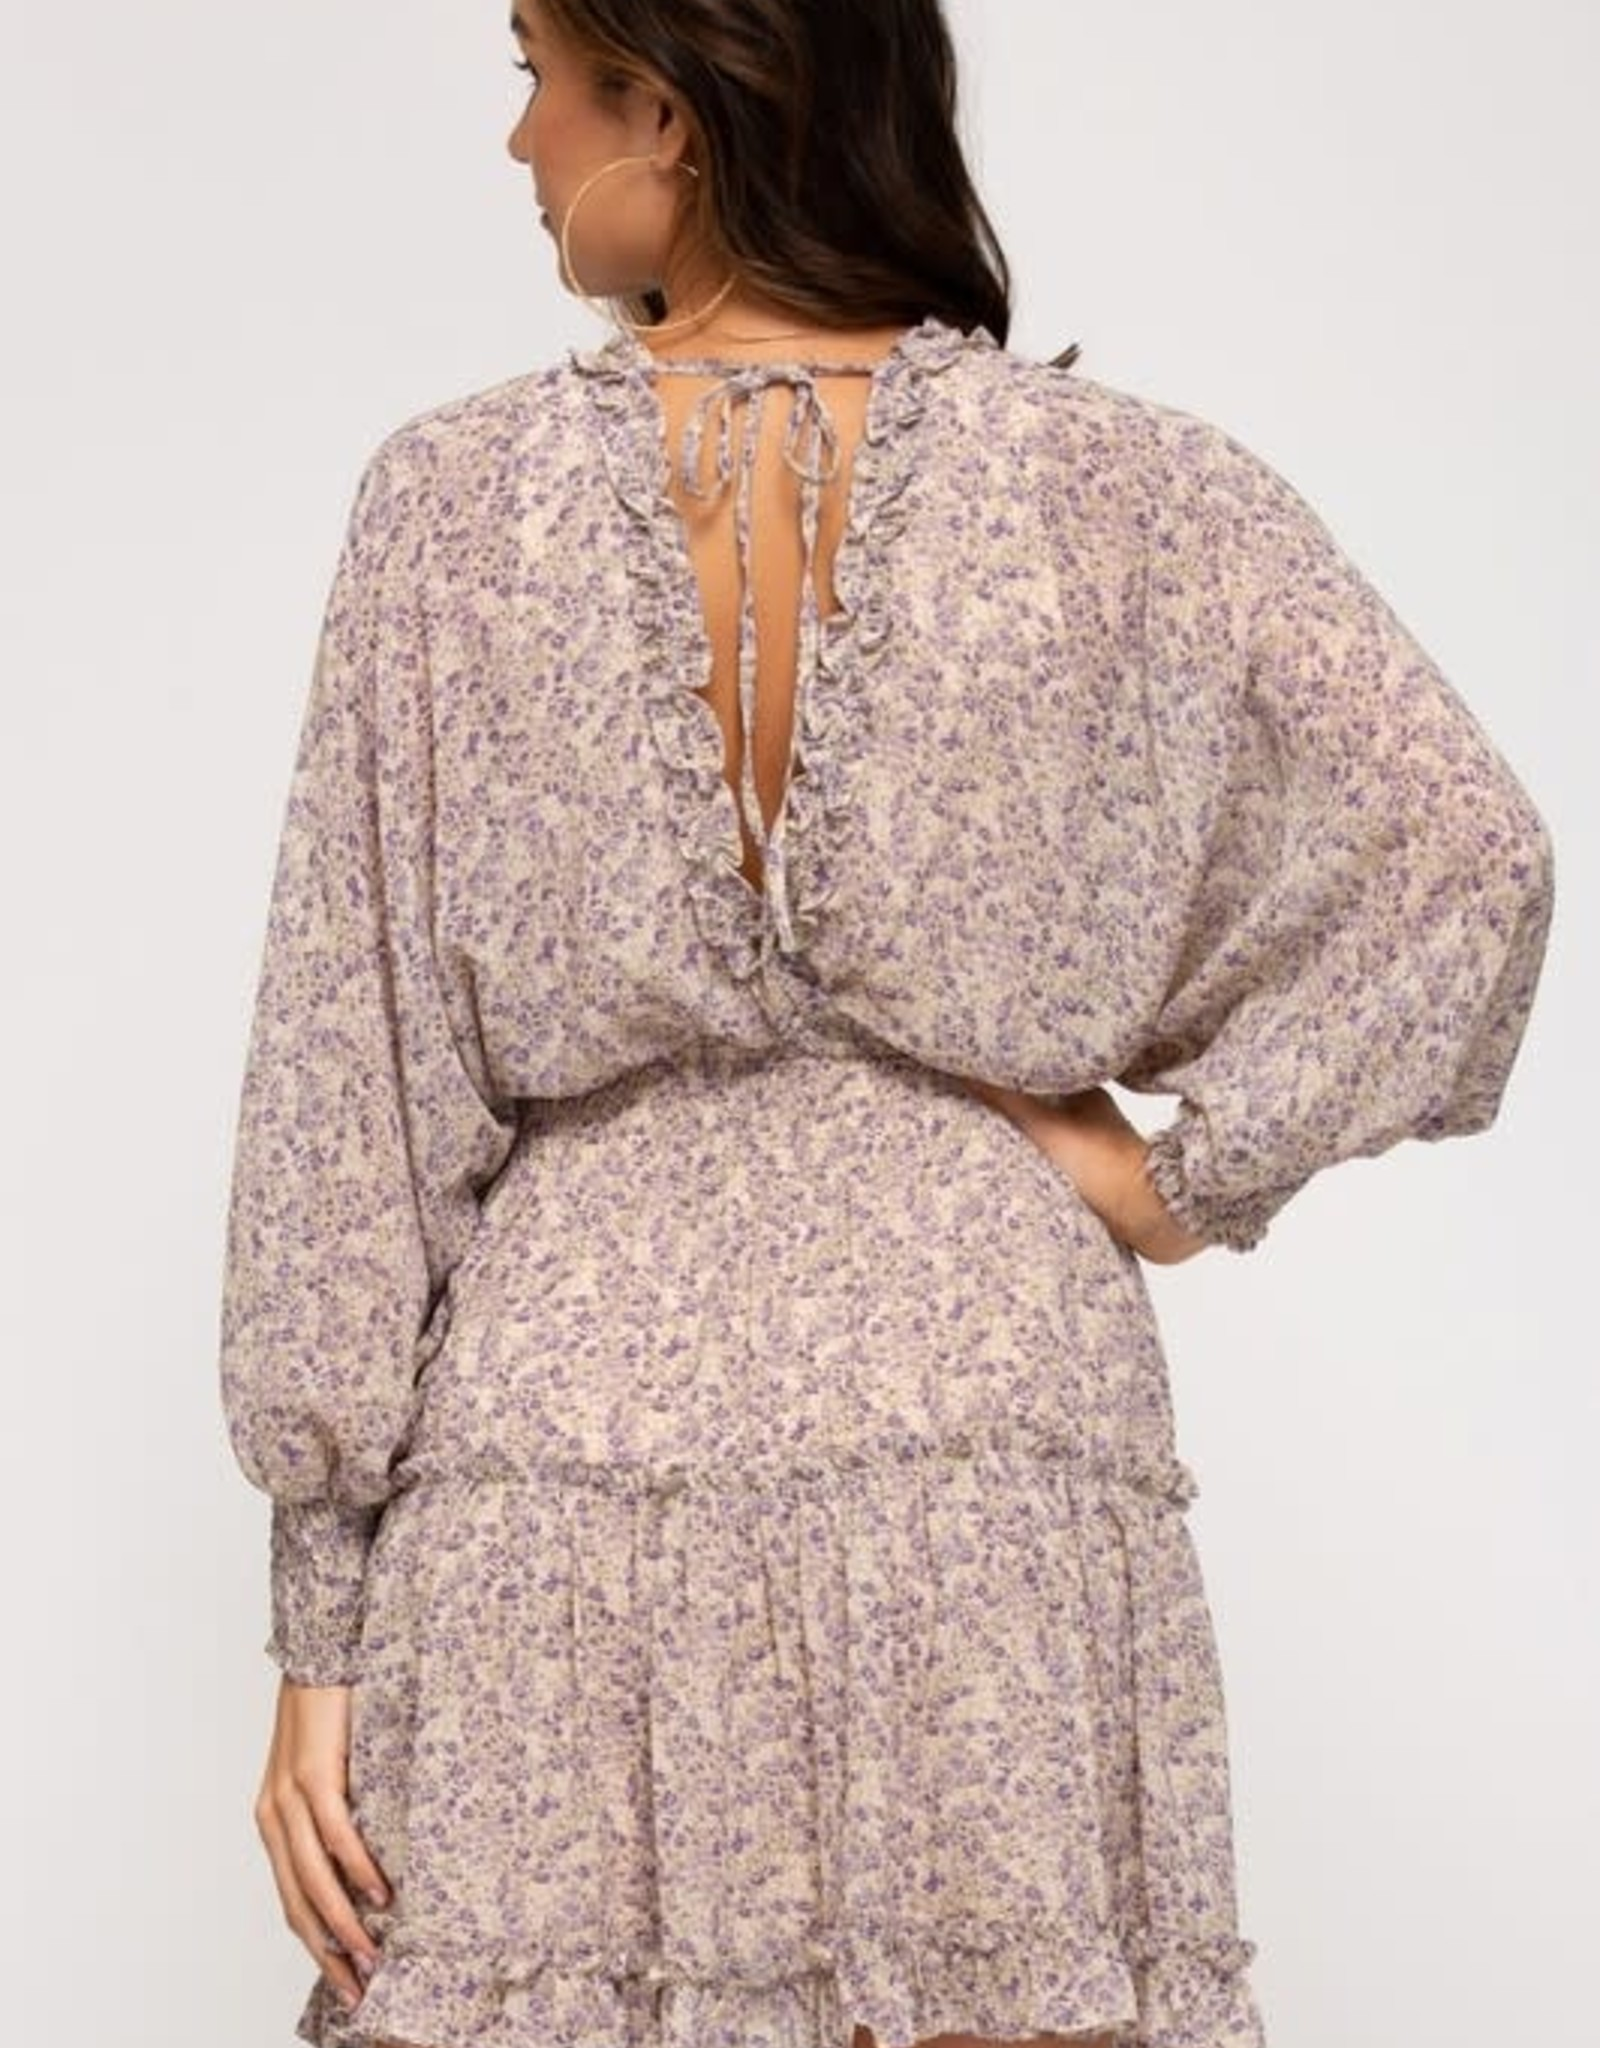 Miss Bliss Long Sleeve Ruffle Detail Floral Dress Lavender